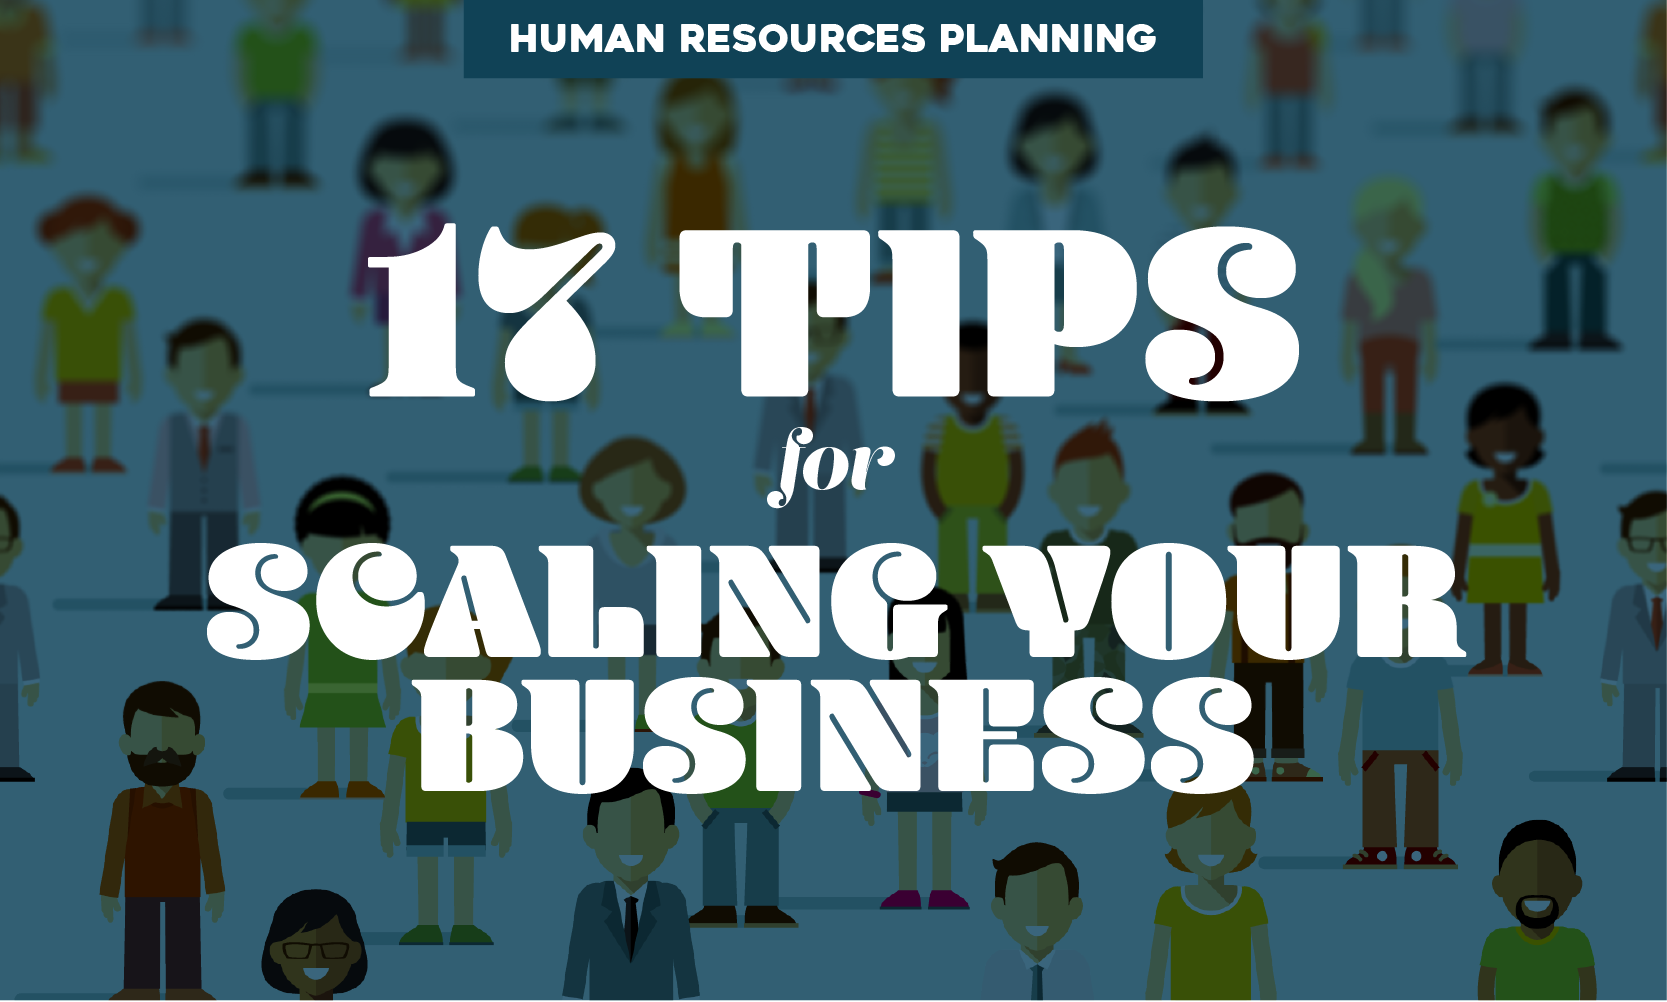 Human Resource Planning: 17 Tips for Scaling Your Business - When I Work